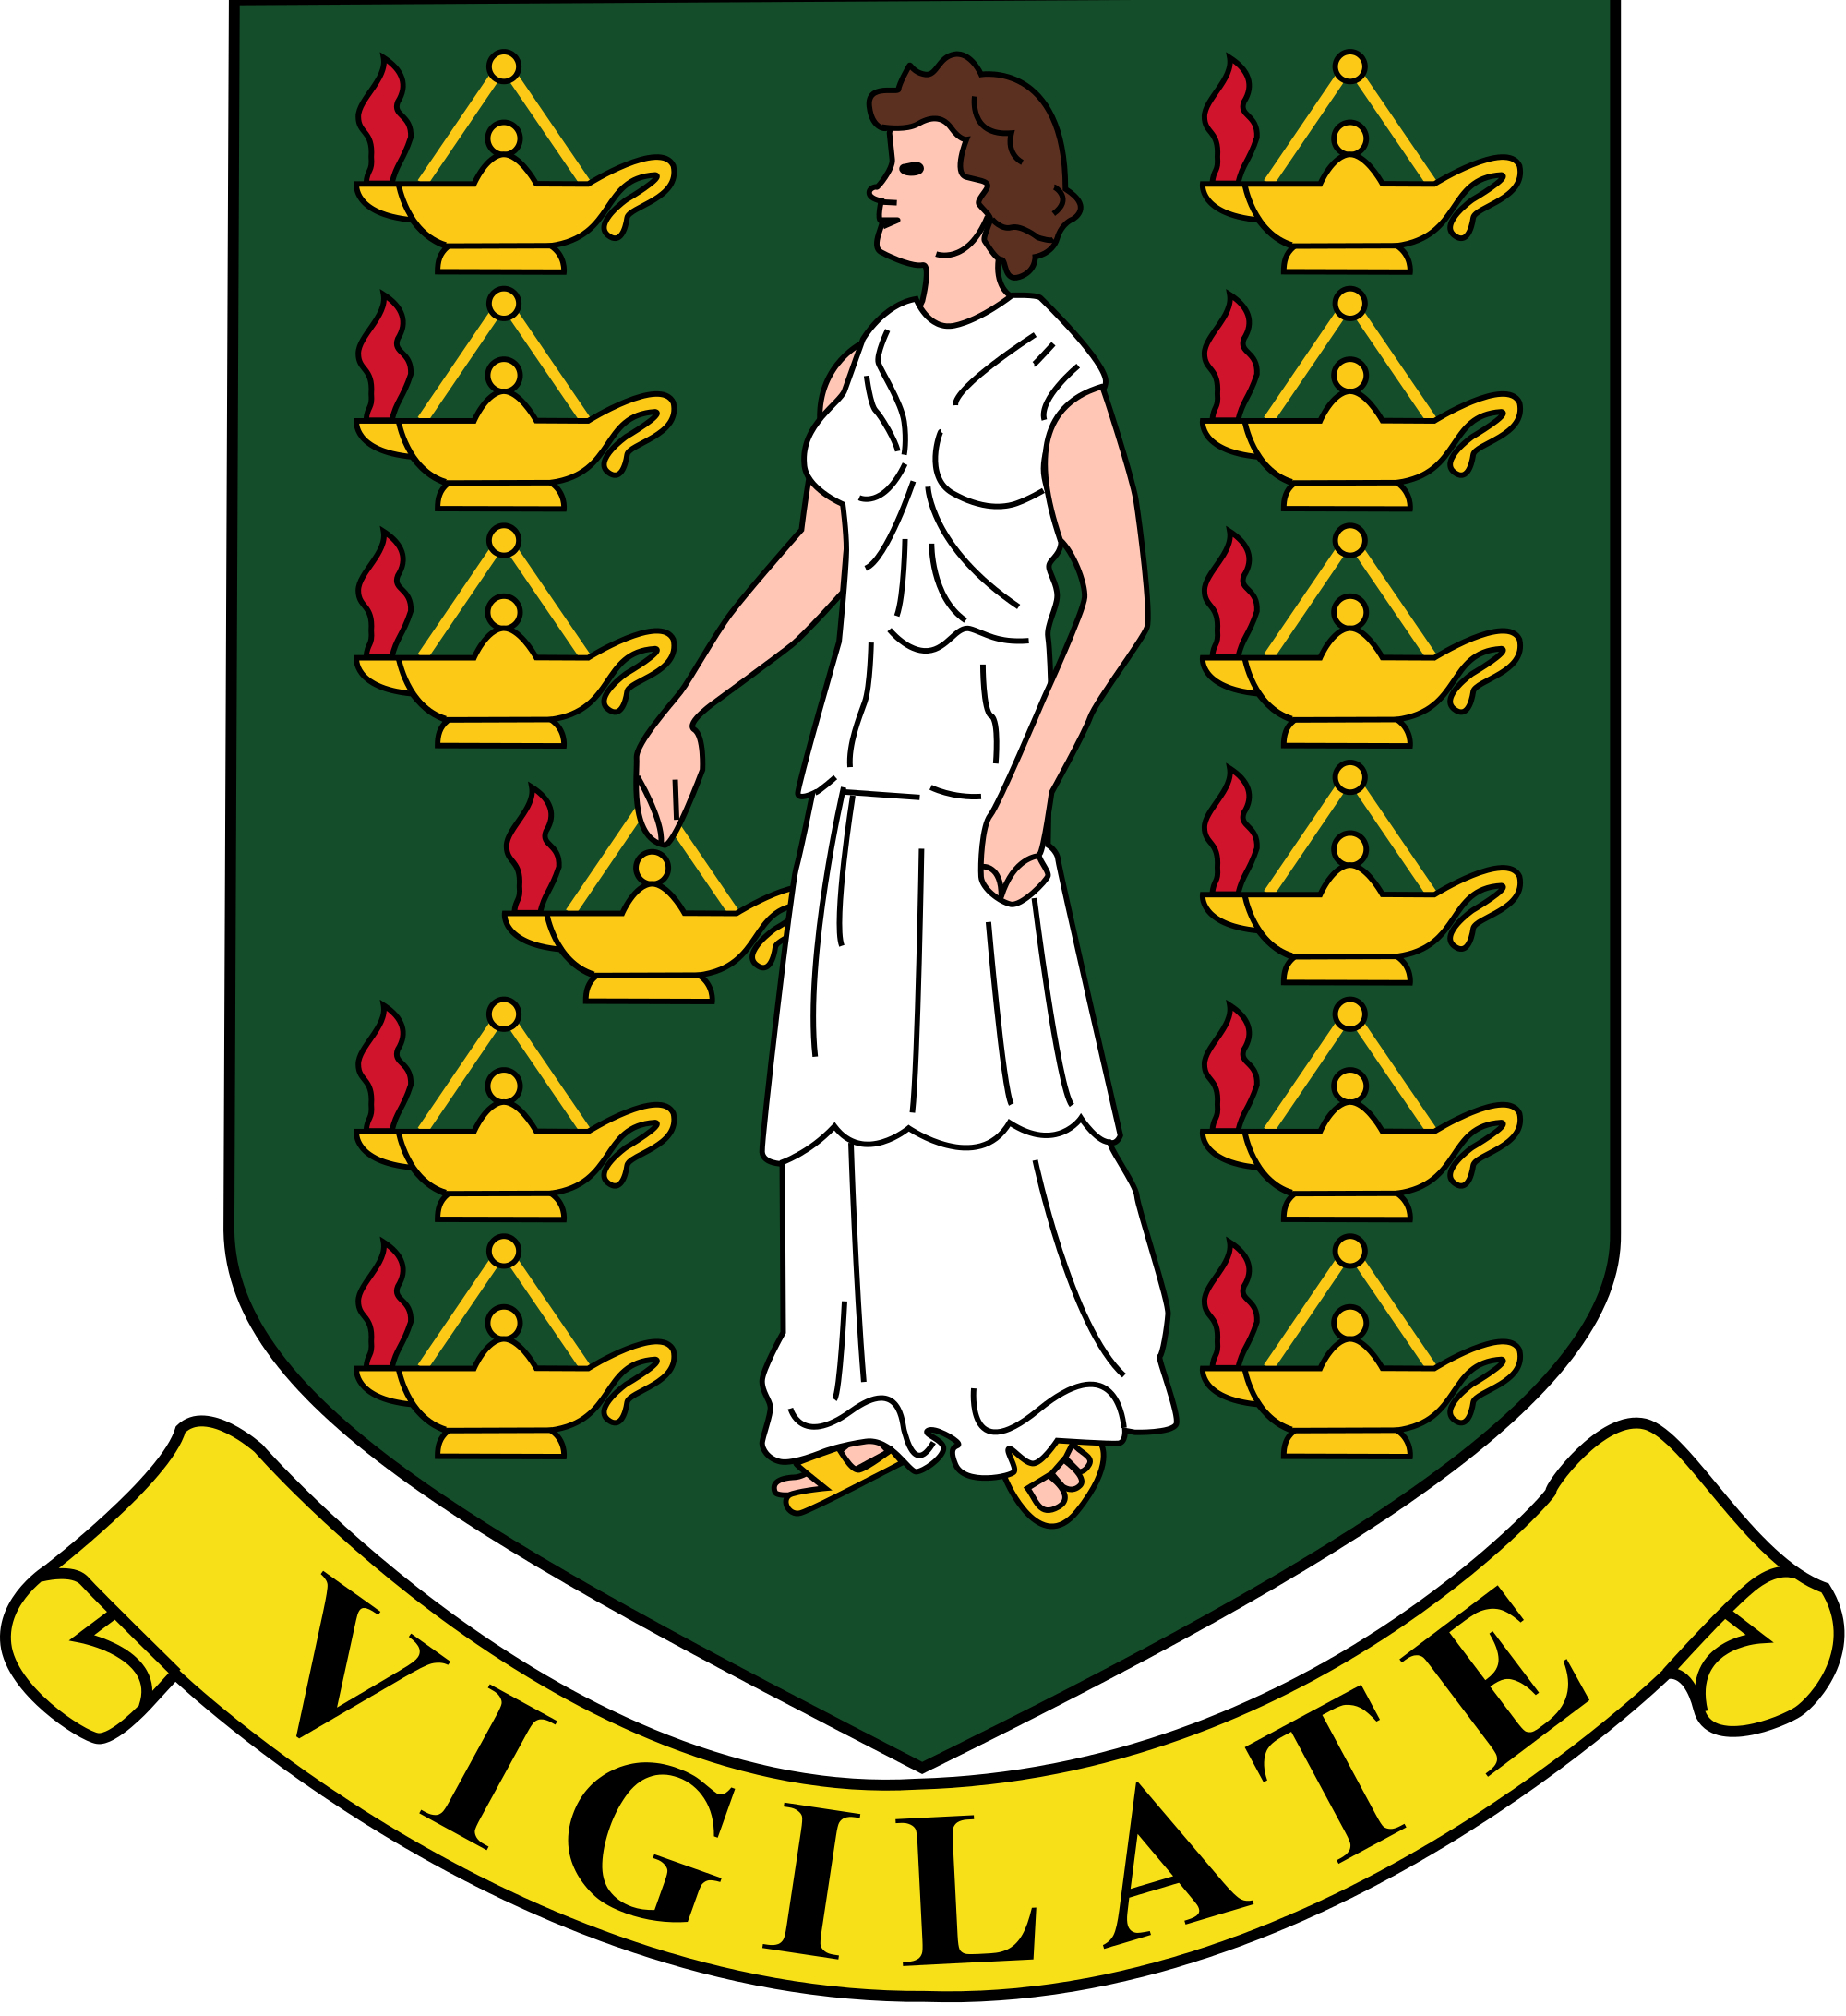 File:Coat of arms of the British Virgin Islands.svg.